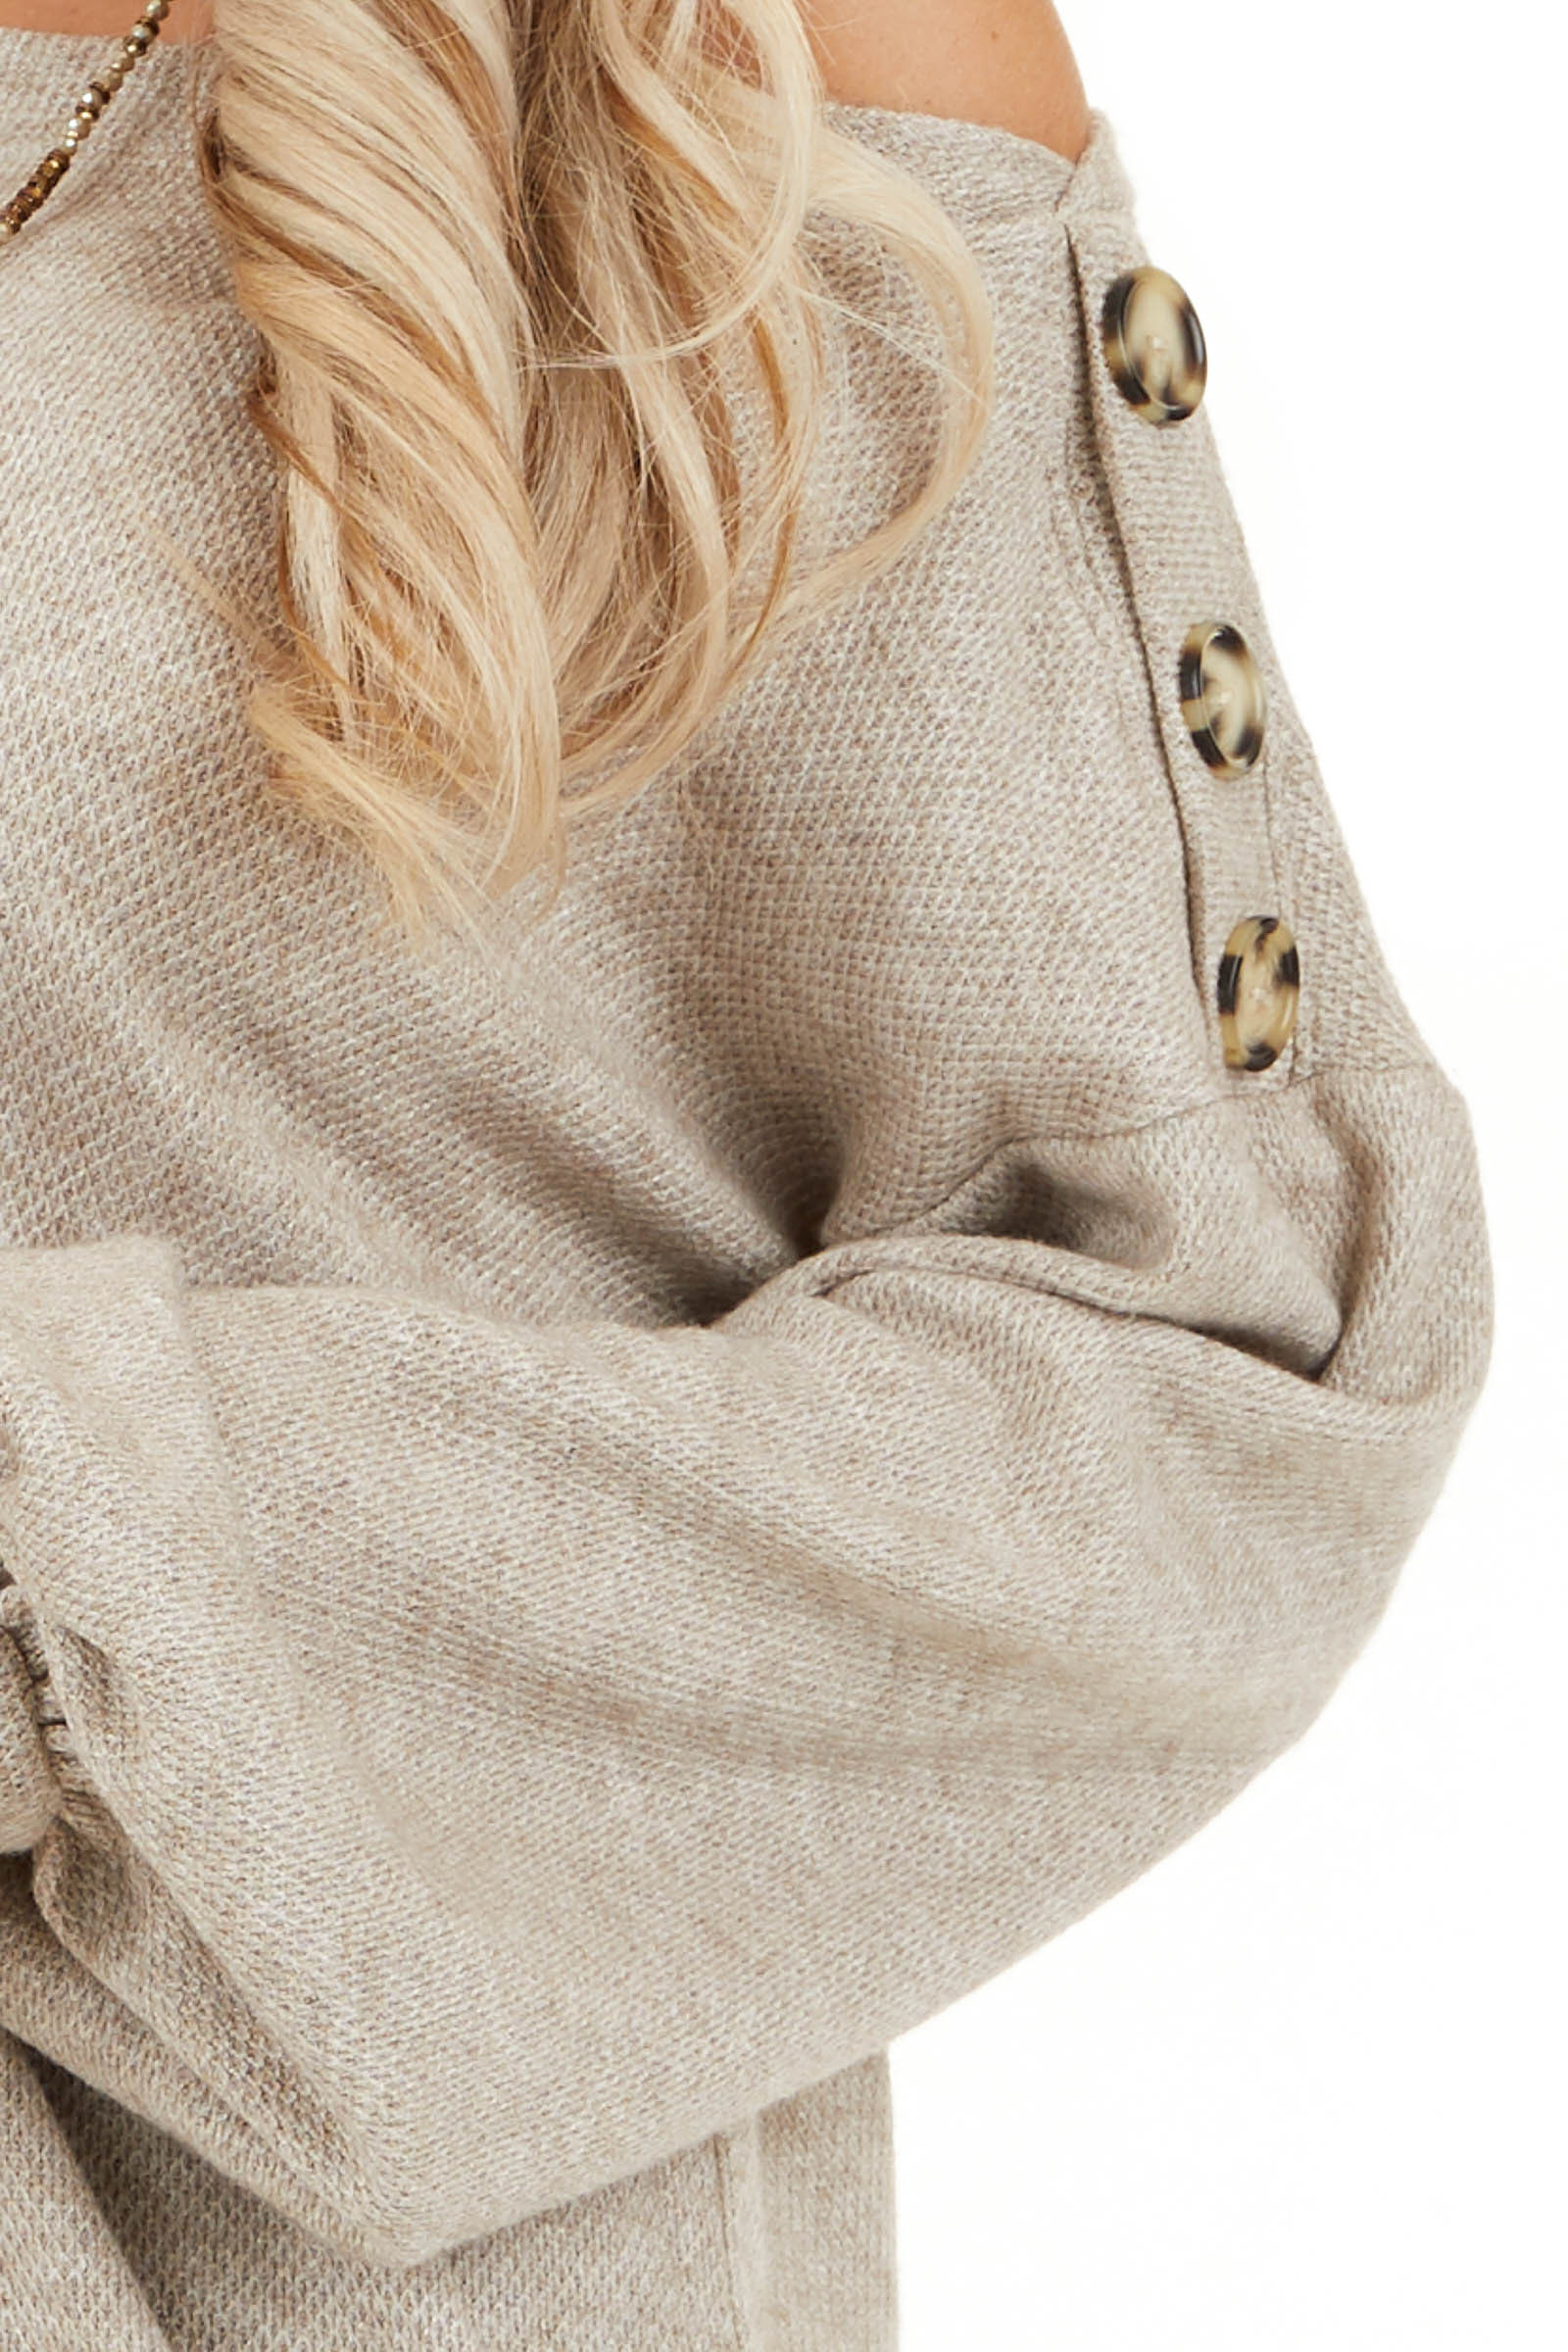 Taupe Off the Shoulder Long Sleeve Top with Button Details detail